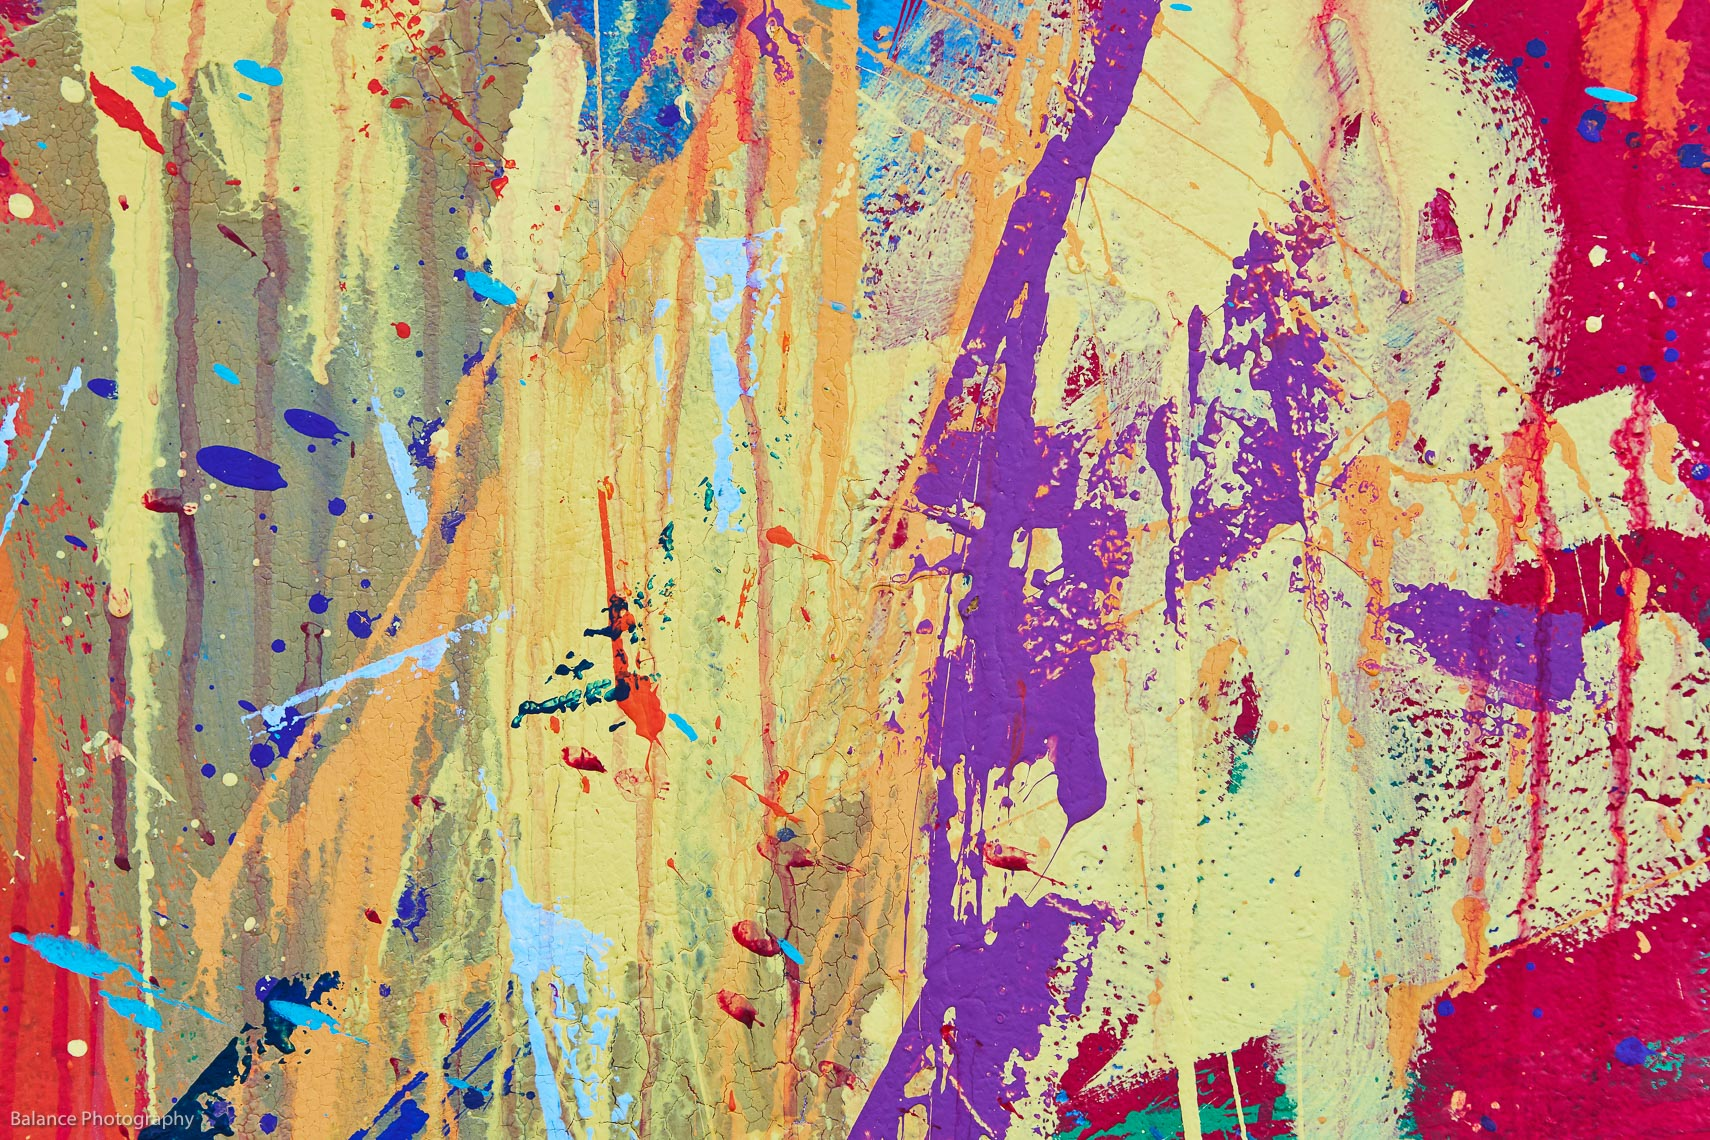 pf_multicolored-vivid-and-textured-gouache-abstract-PZSU7Q4